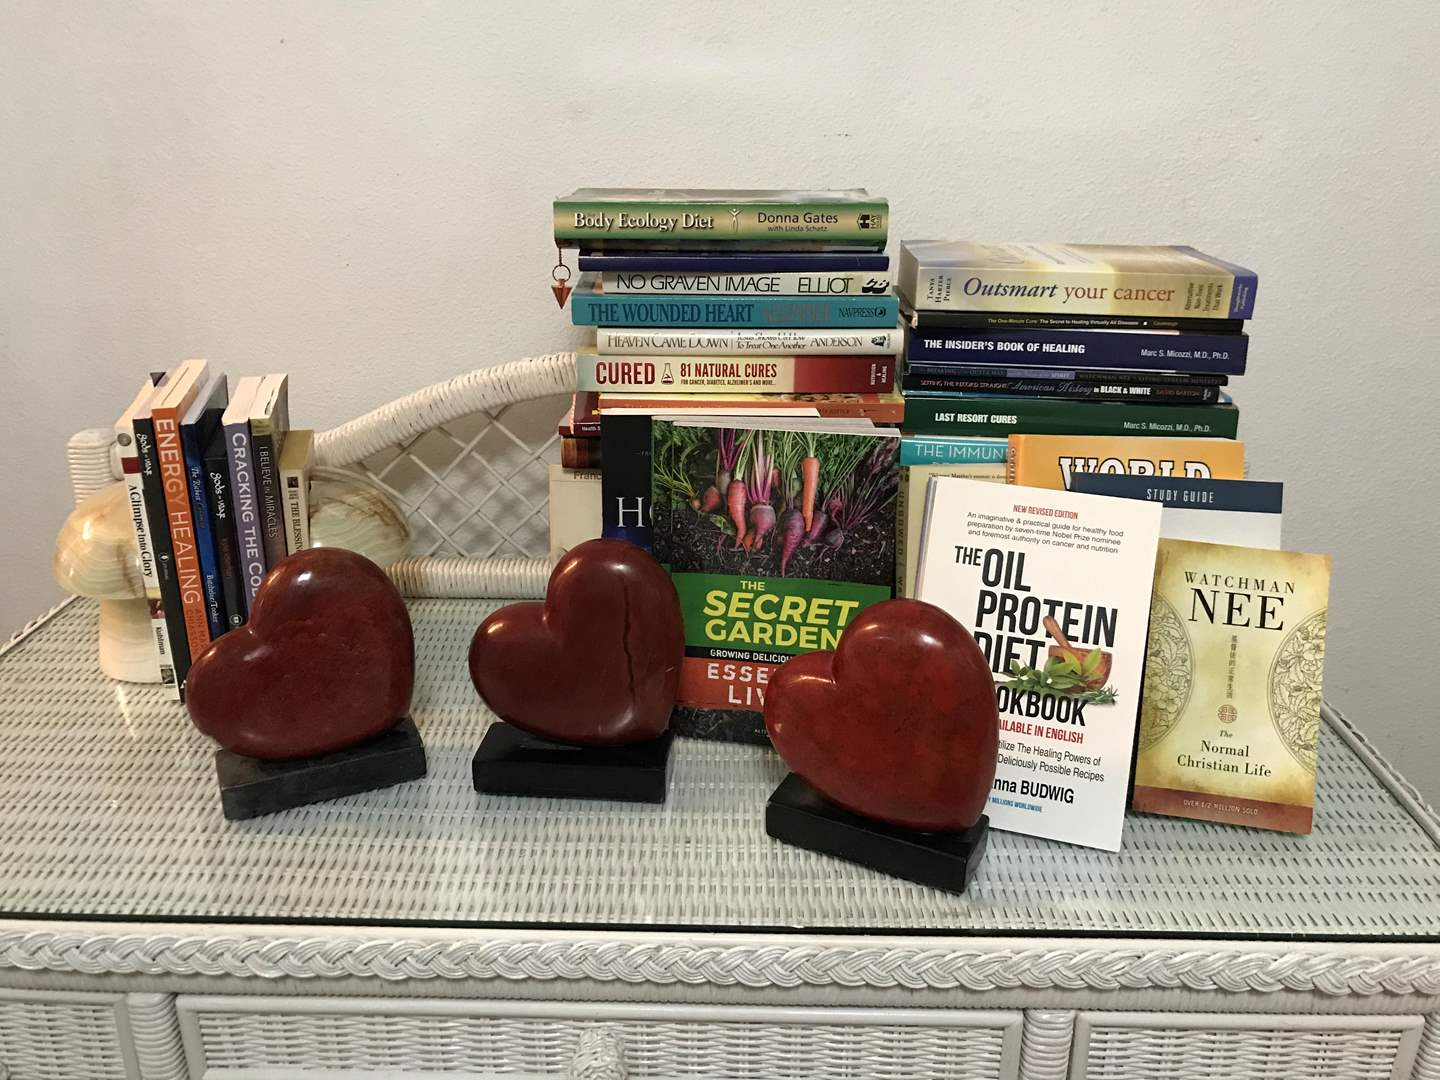 Lot # 99 - Small Selection of Books, Marble Mushroom Book Ends, 3 Marble Heart Shaped Book Ends (main image)